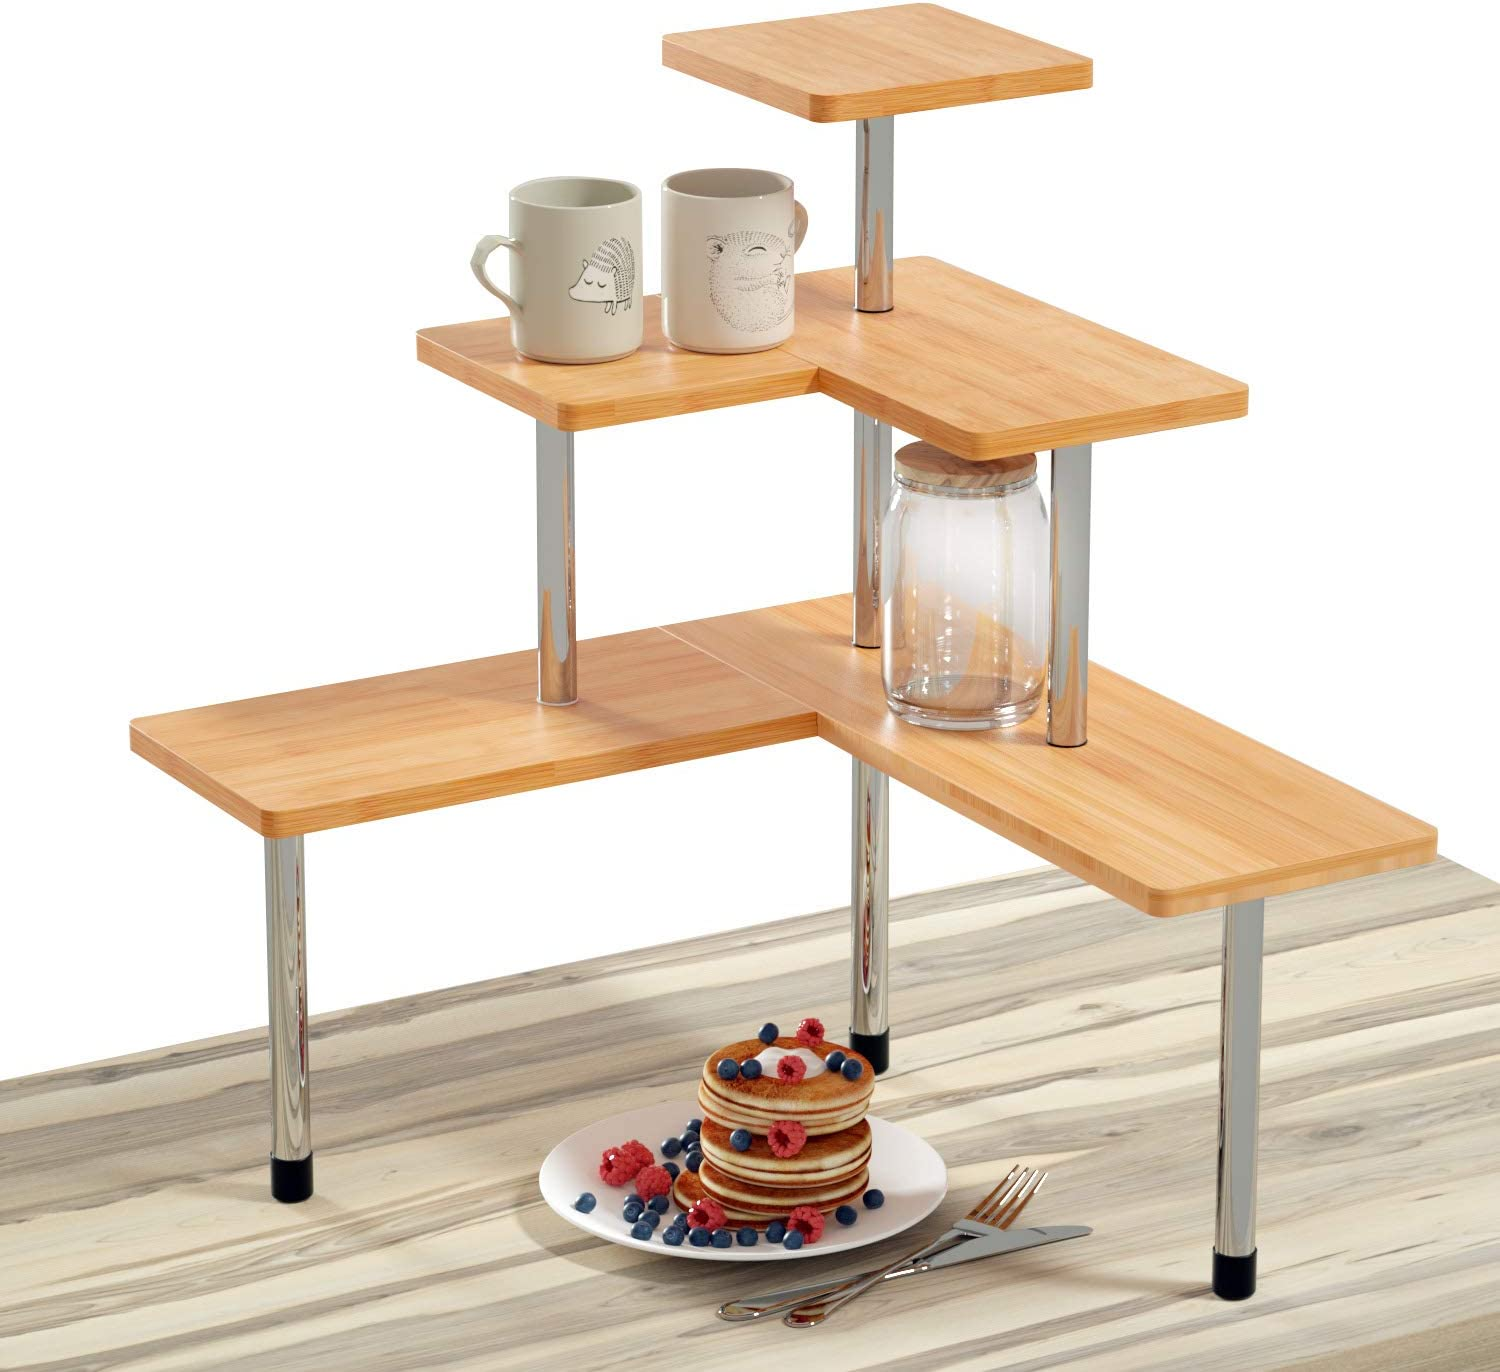 Ollieroo Compact Kitchen Counter Organizer, 3 Tier Multiple Combinations Corner Shelf Bathroom Countertop Storage Rack (Patented Product)